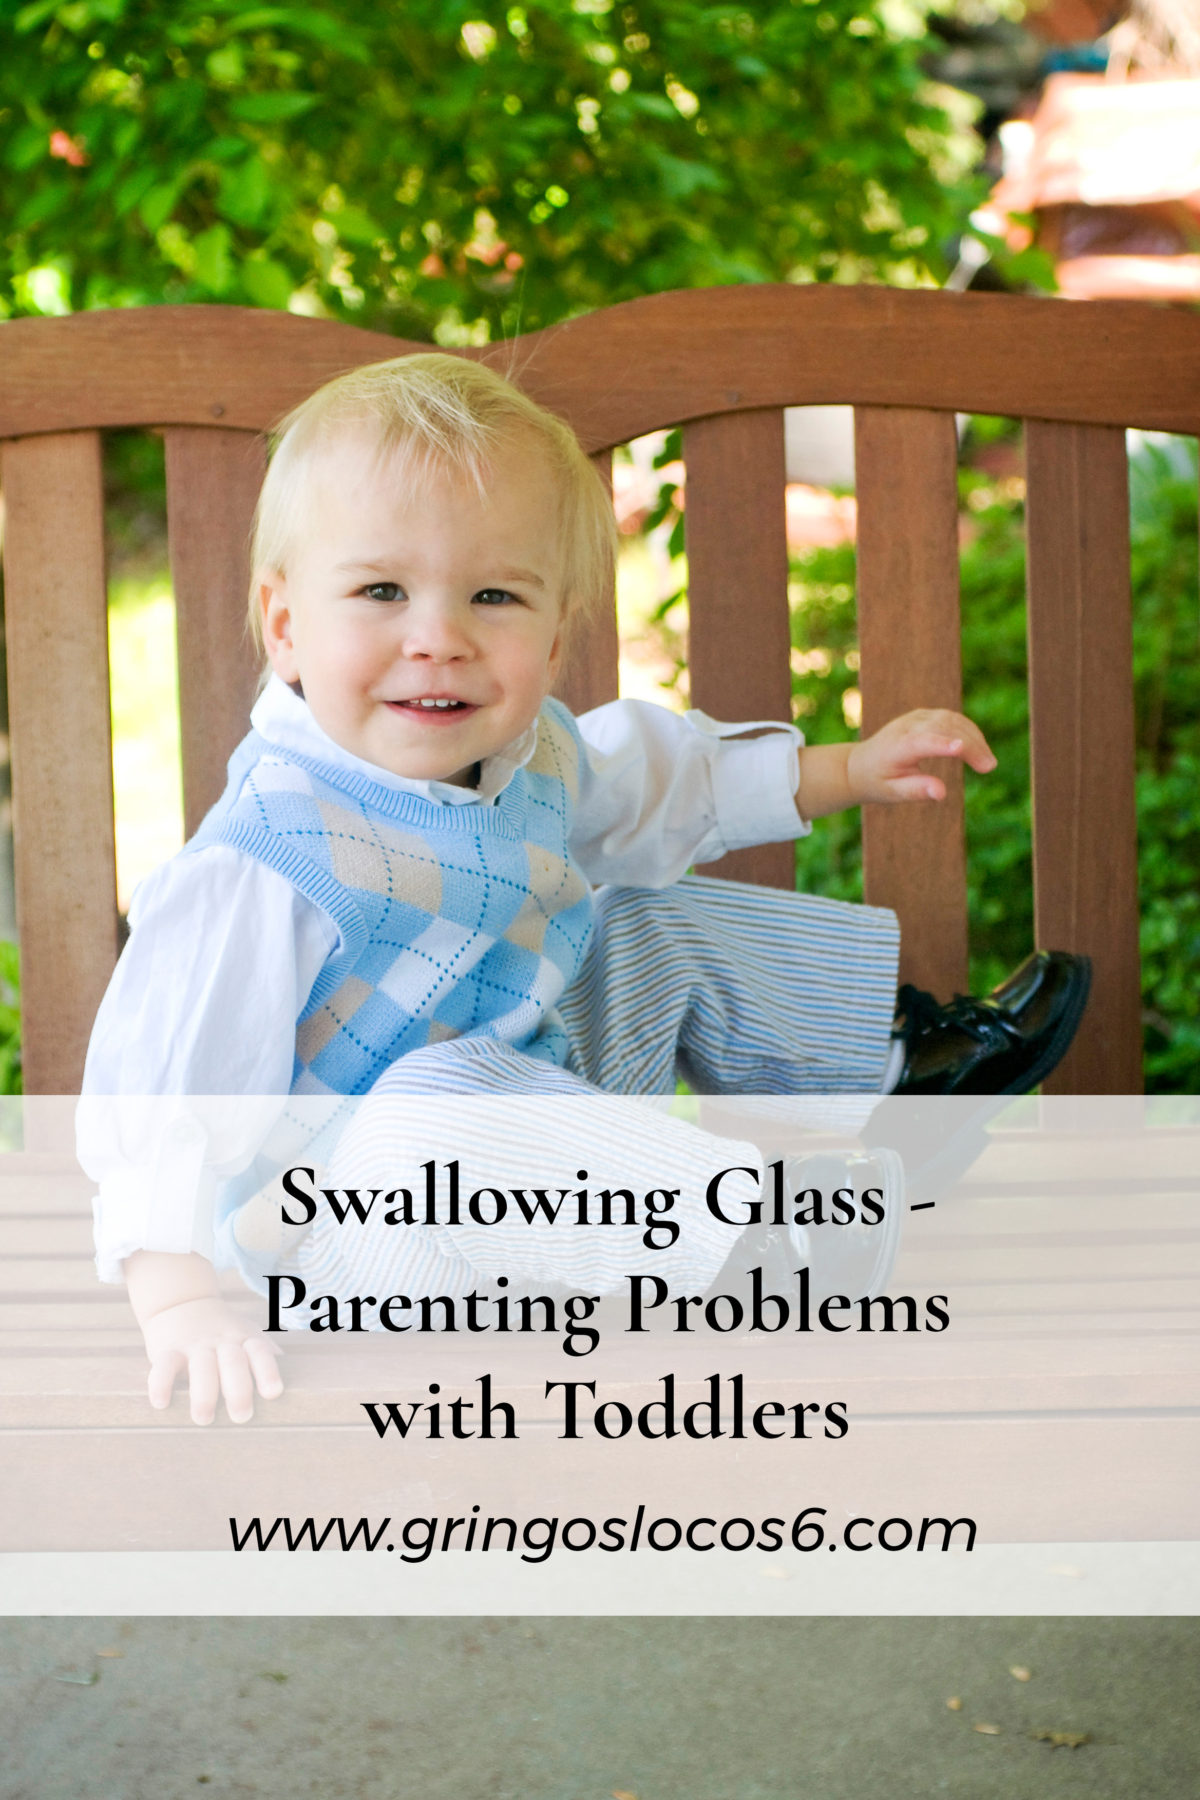 Swallowing Glass – Parenting Problems with Toddlers